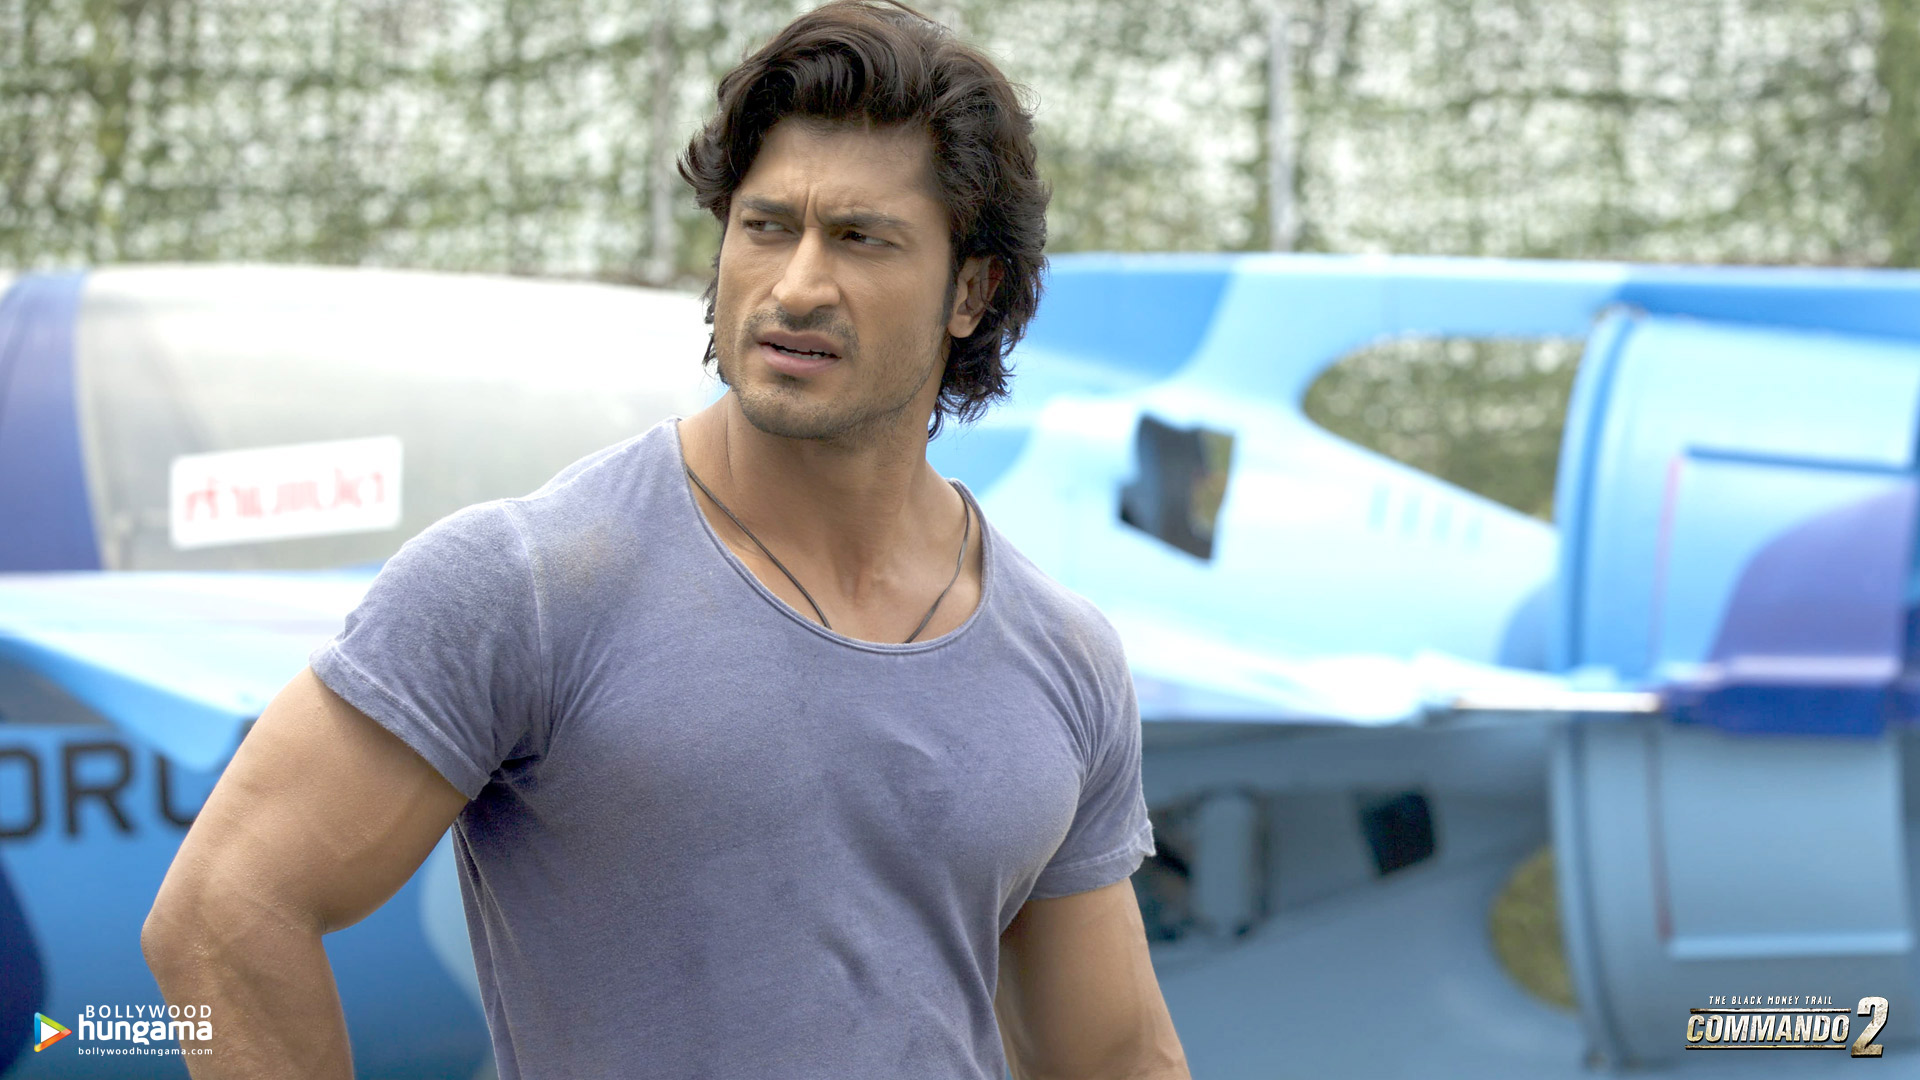 Commando 2 Wallpaper: Commando-2-5-4 - Bollywood